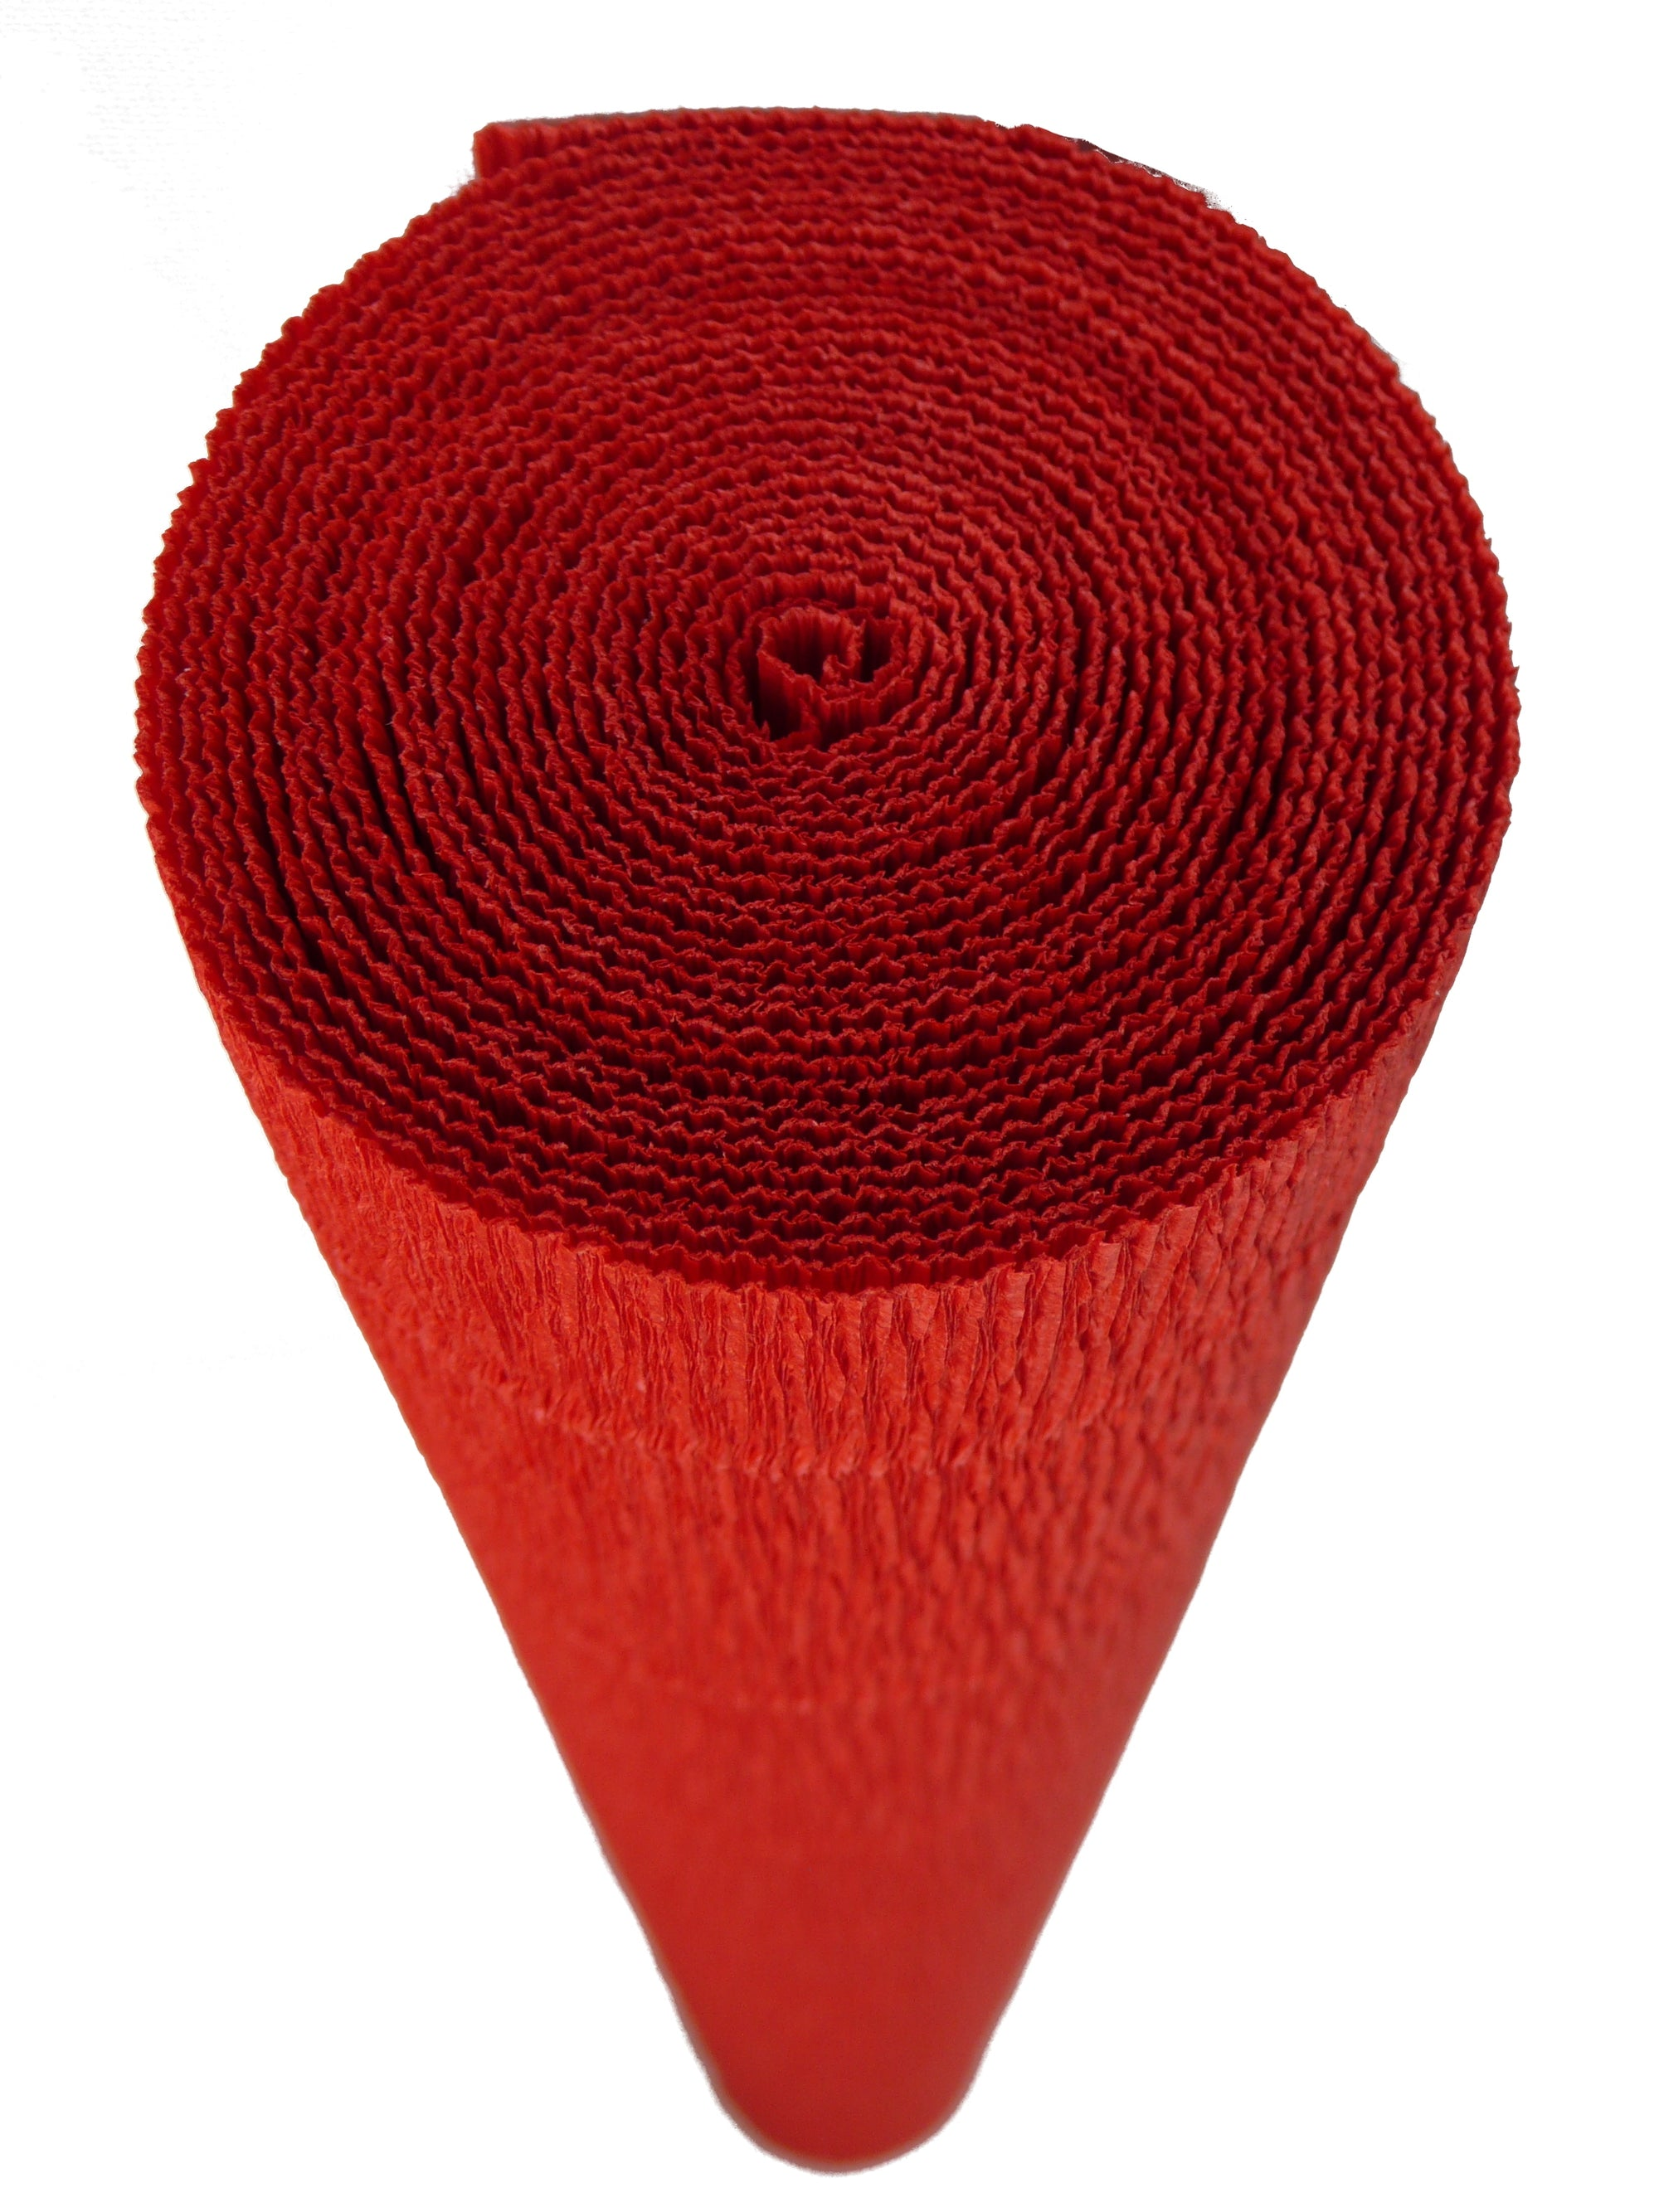 Italian Crepe Paper roll 180 gram - 618 Deep Orange Red BY TIFFANIE TURNER